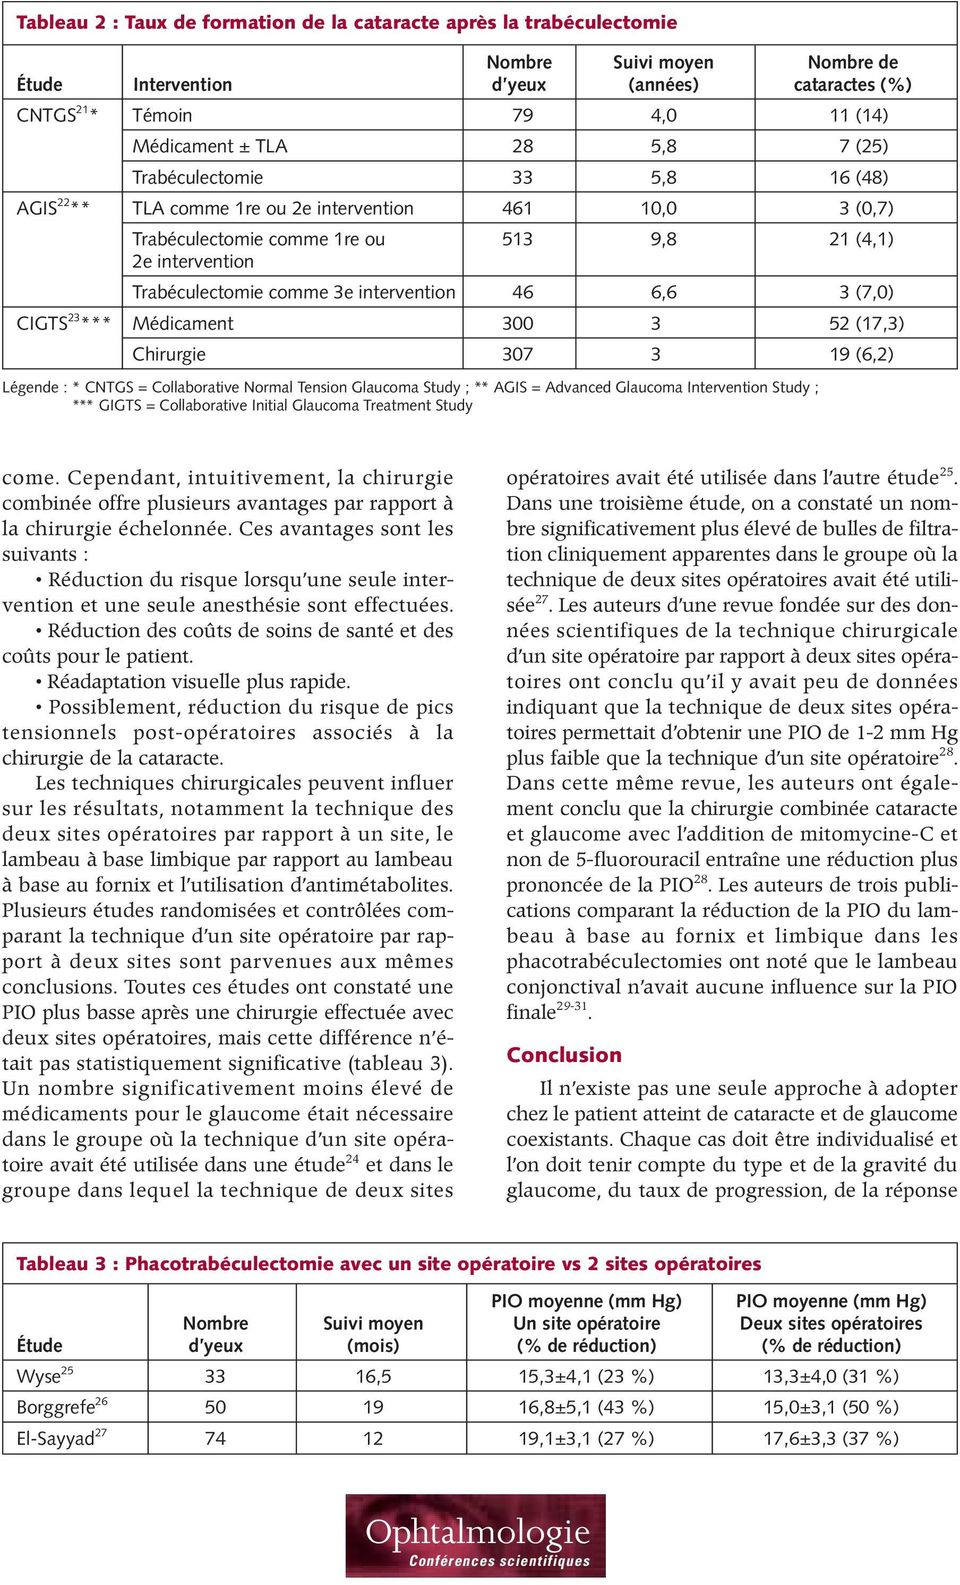 intervention 46 6,6 3 (7,0) CIGTS 23 *** Médicament 300 3 52 (17,3) Chirurgie 307 3 19 (6,2) Légende : * CNTGS = Collaborative Normal Tension Glaucoma Study ; ** AGIS = Advanced Glaucoma Intervention